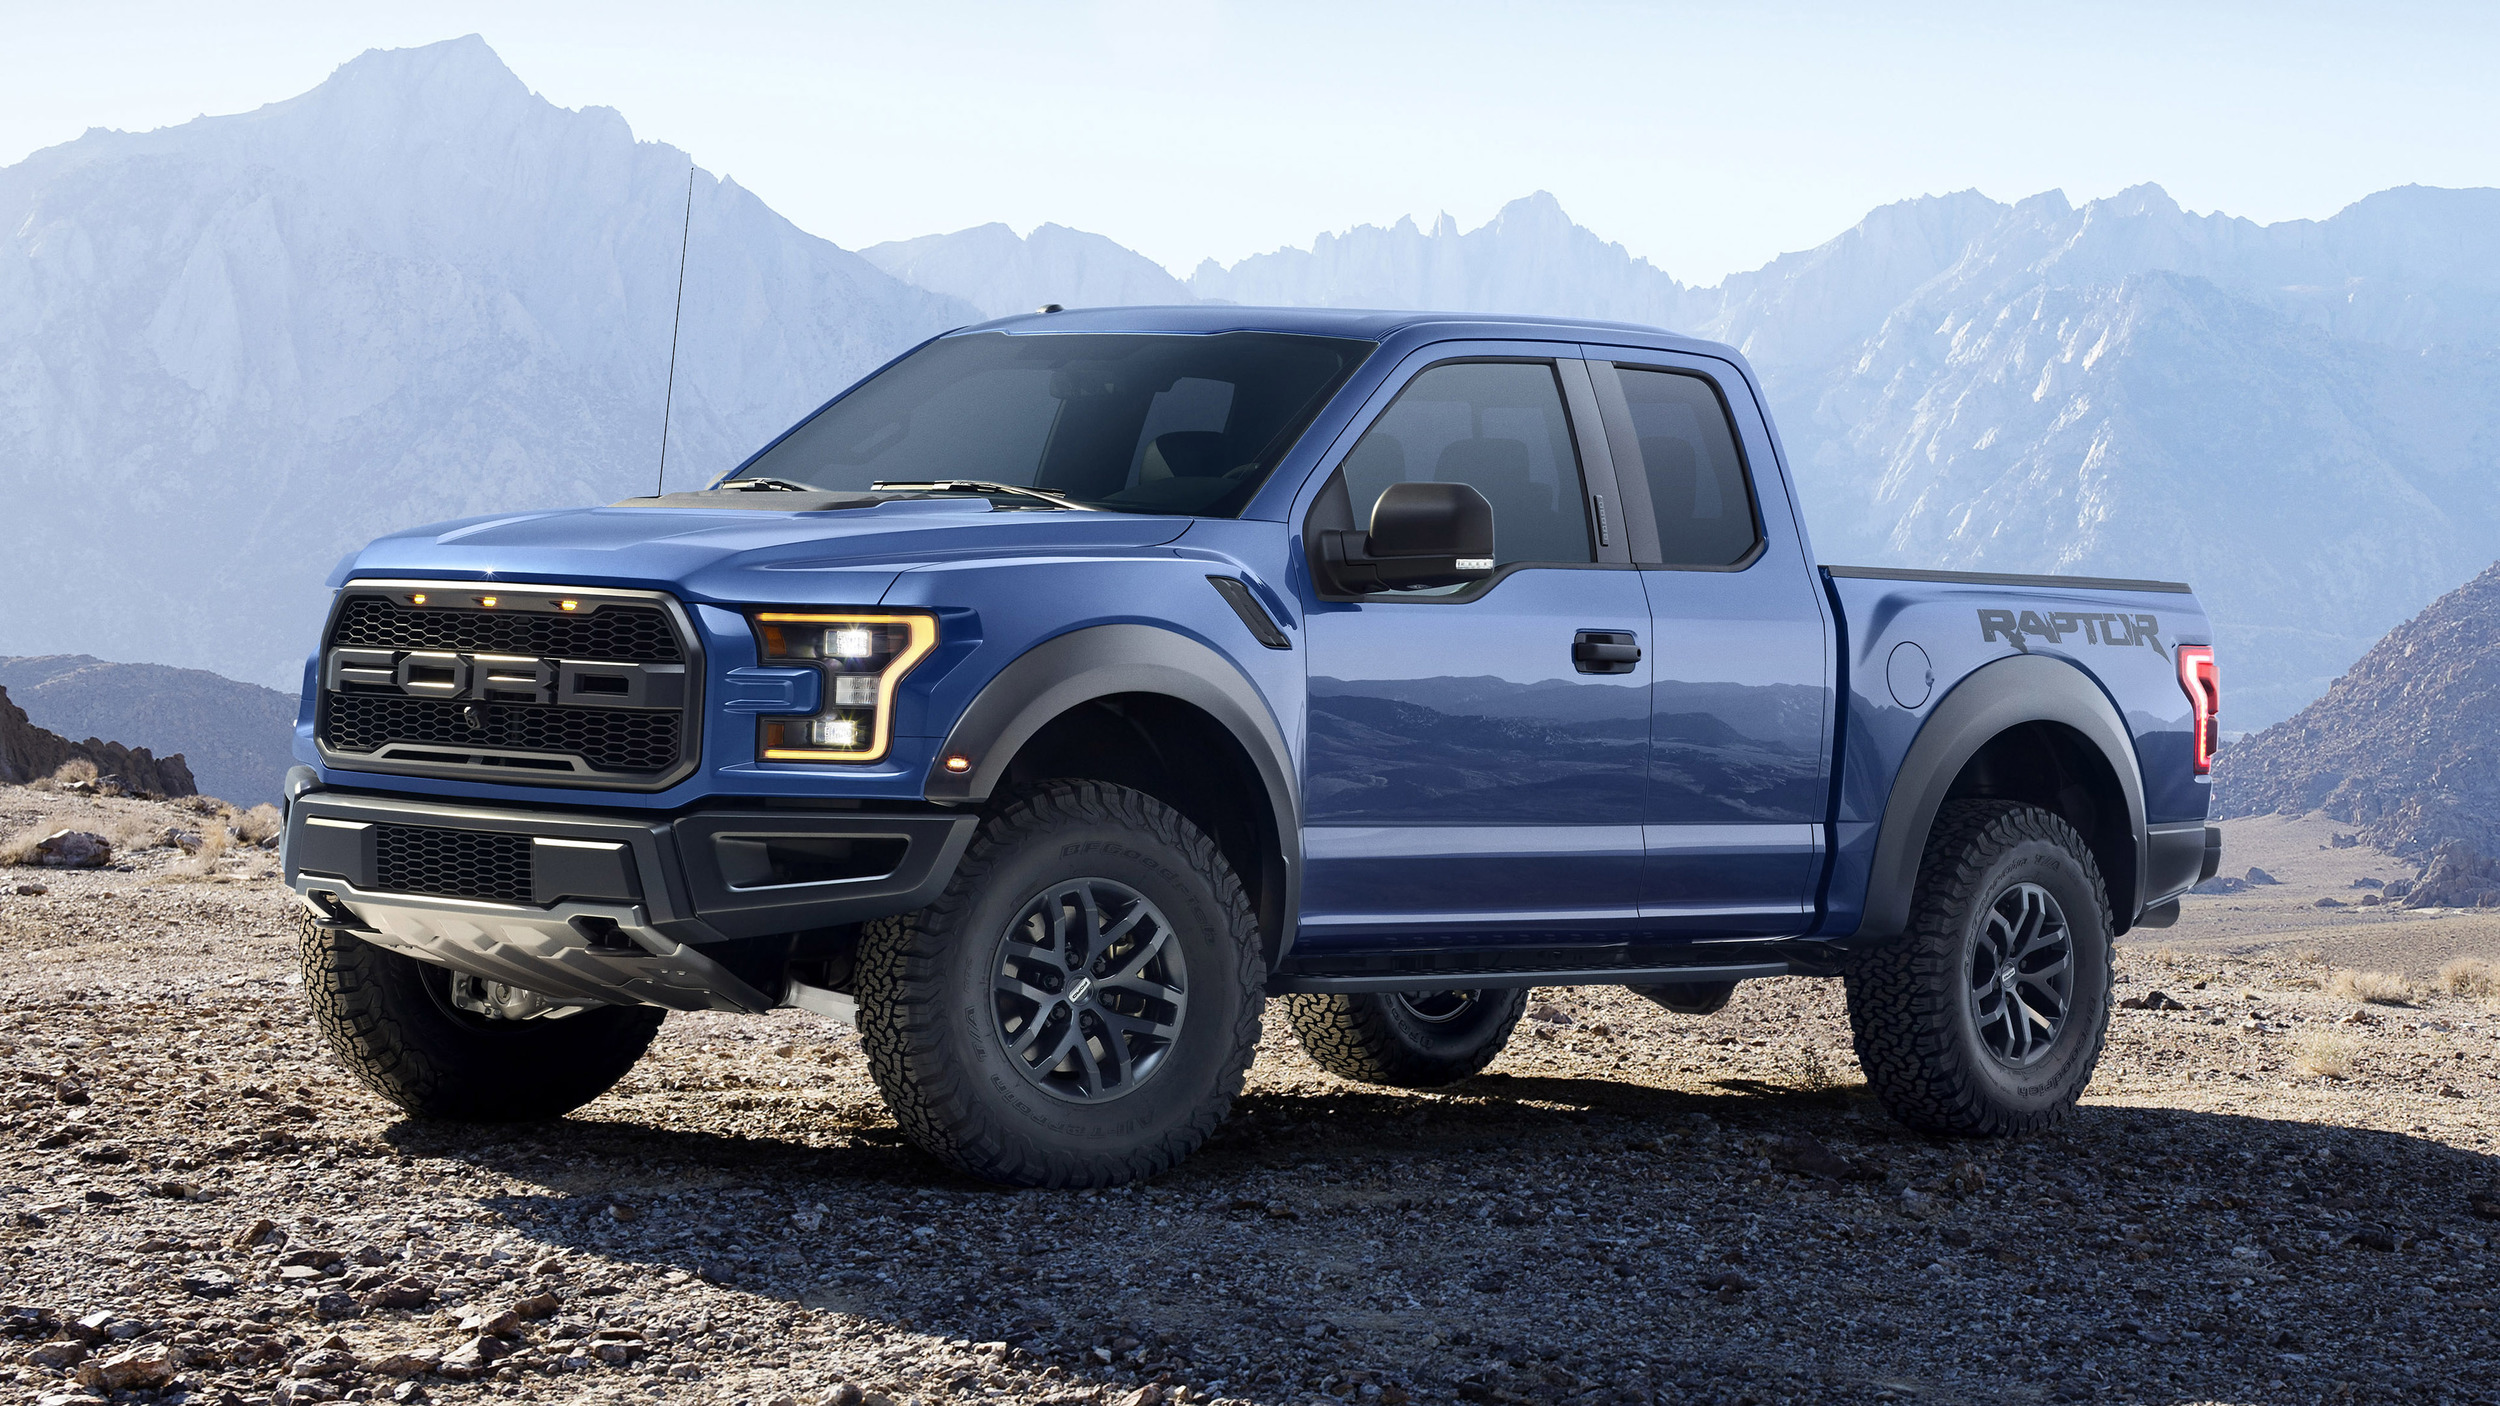 The 2017 F 150 Raptor could be capable of over 600 HP